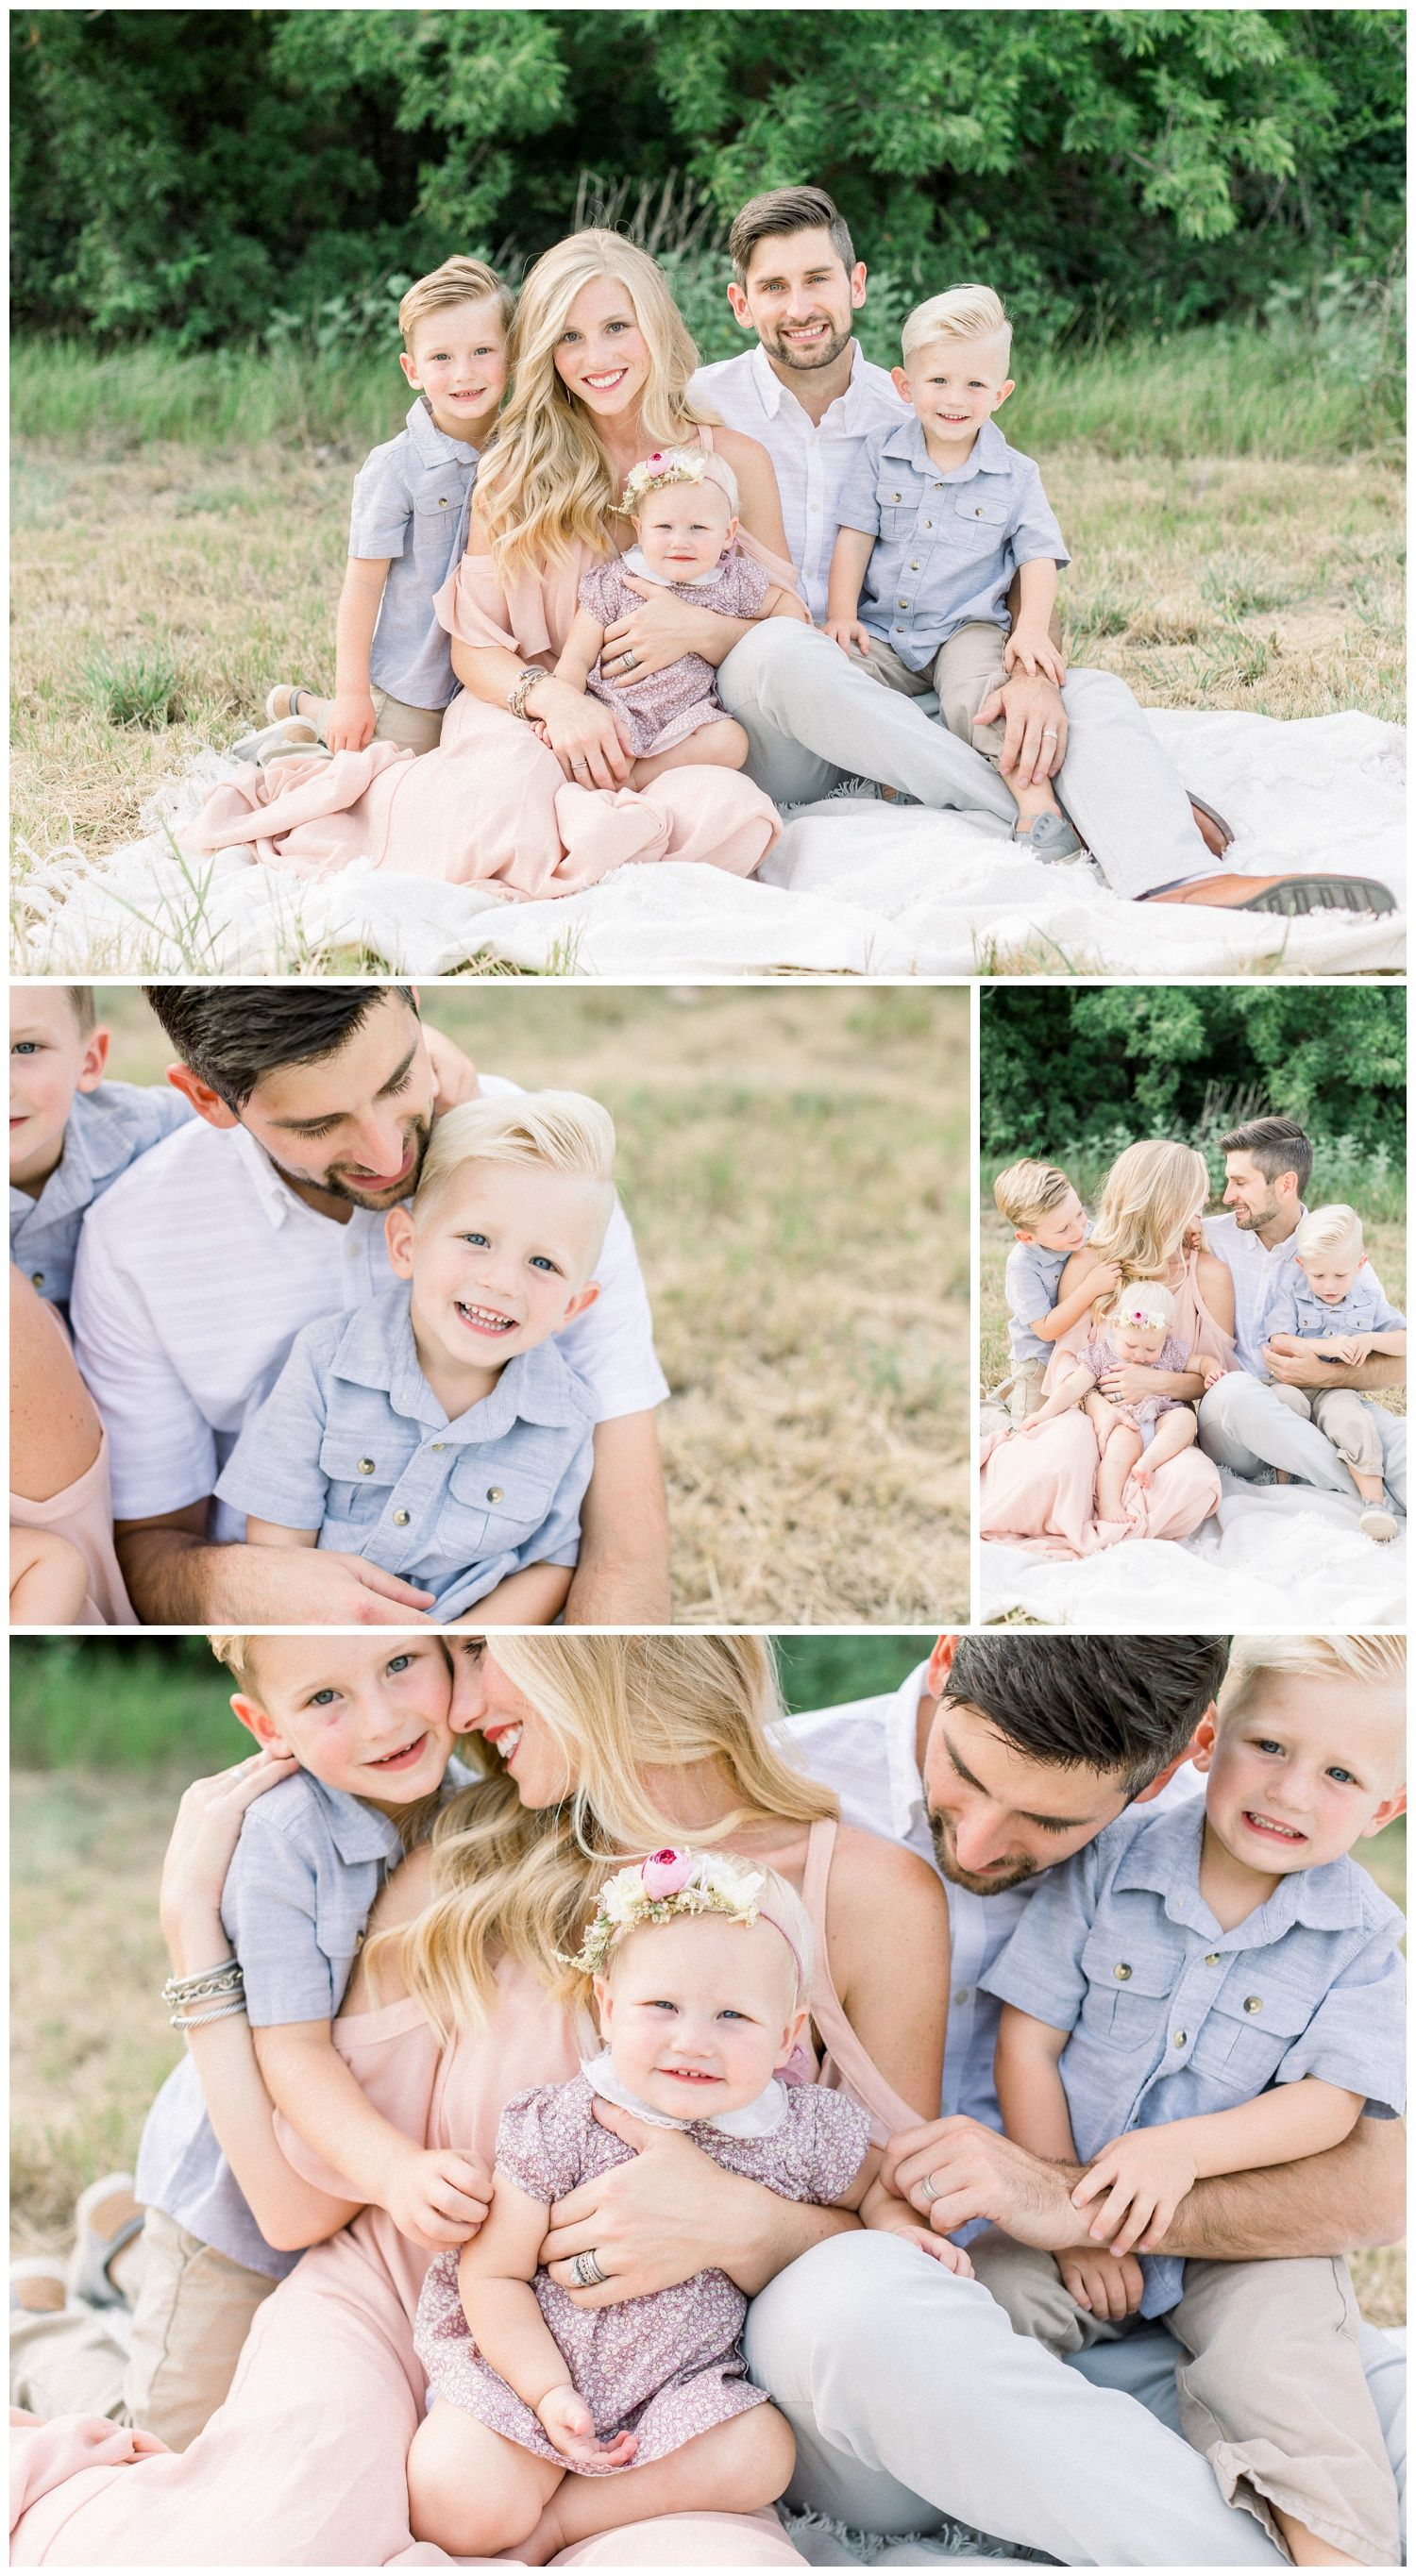 Alexander Family | Fall Family Session 2018 | Abilene Texas Photographer — Jaime Rogl Photography | Abilene Texas Newborn & Maternity Photographer